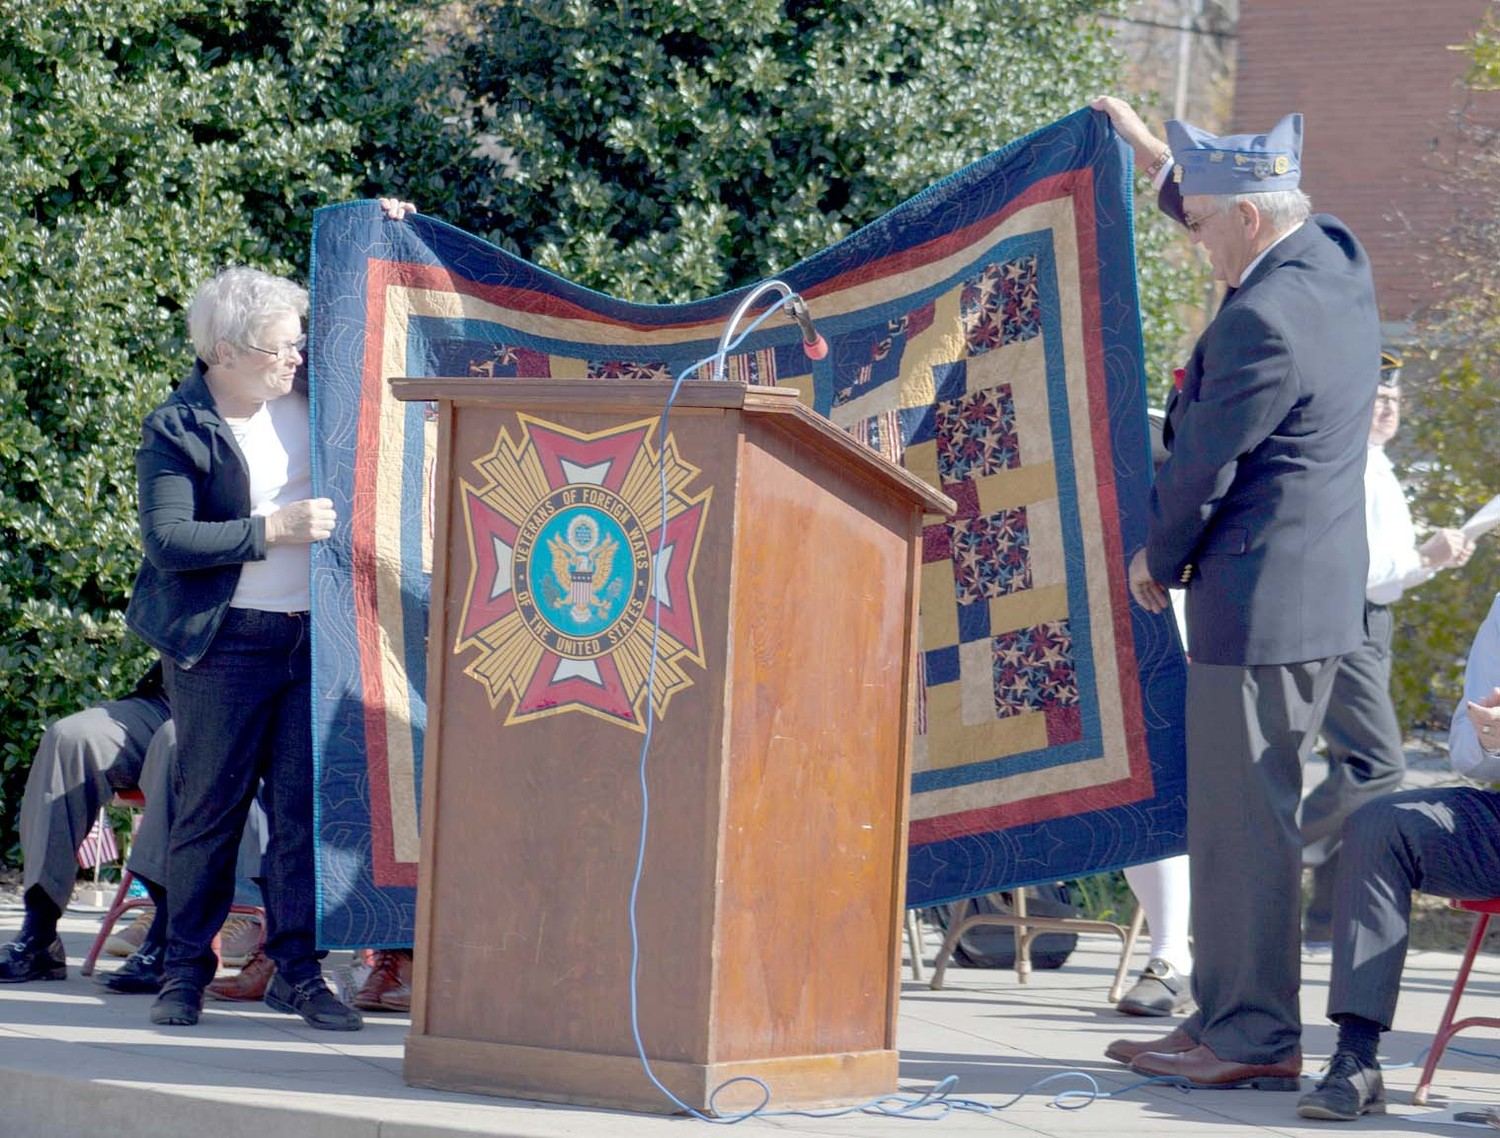 KATHAY PEGRAM, left, presents Donnie Hancock, commander of American Legion Post 81, with the Quilt of Valor on behalf of the Cherokee Blossom Quilt Guild.